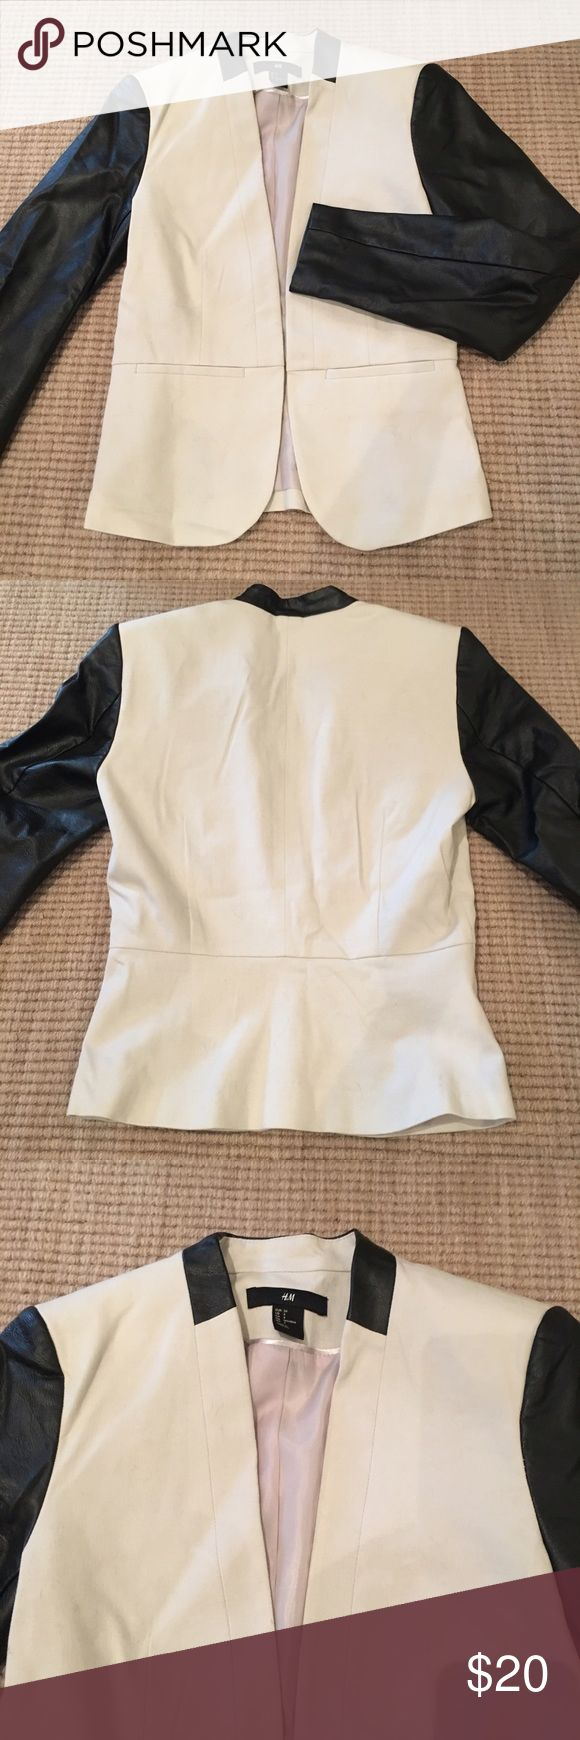 H&M linen front with faux leather sleeve jacket Ivory linen bodice with peplum bottom and two stitched closed slit pockets. Faux leather sleeves. Dress it up and go to work, Pair it with a black dress or jeans. It's a winner! H&M Jackets & Coats Blazers